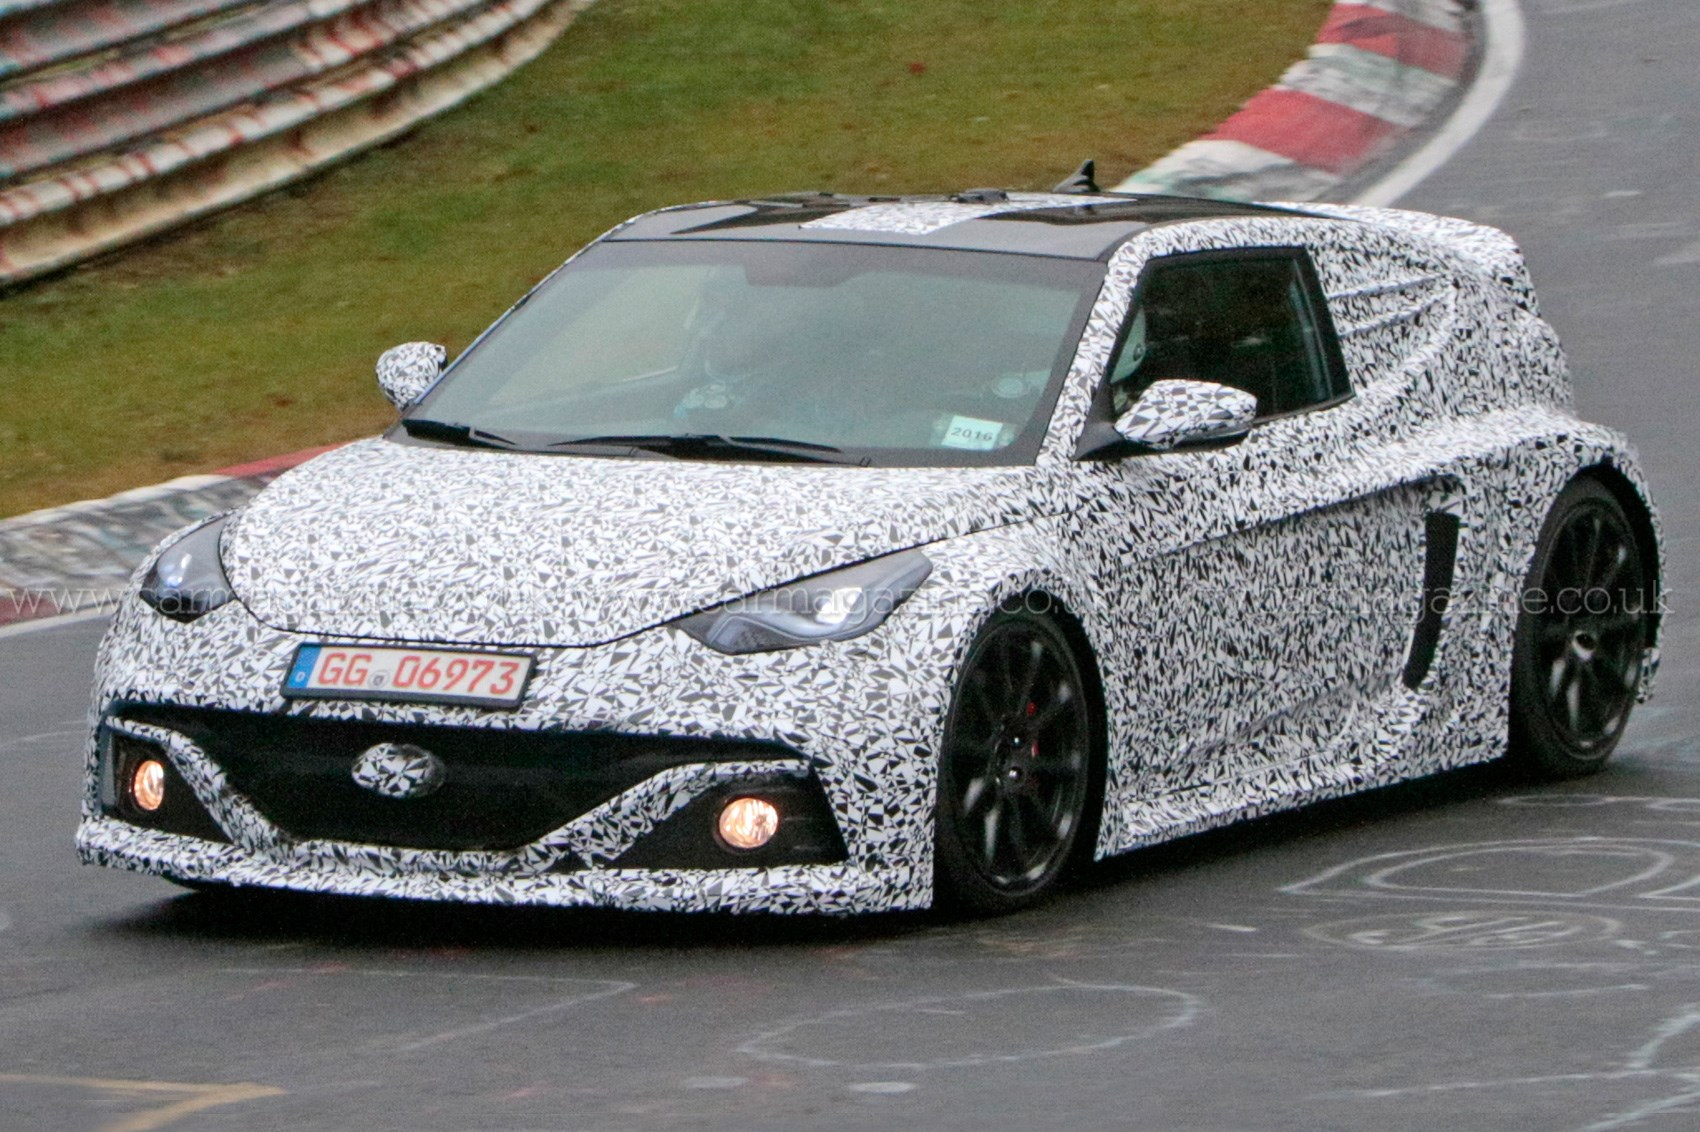 Hyundai Spy Shots >> Hyundai Rm16 Mid Engined Hyper Hatch Spied At The Nurburgring By